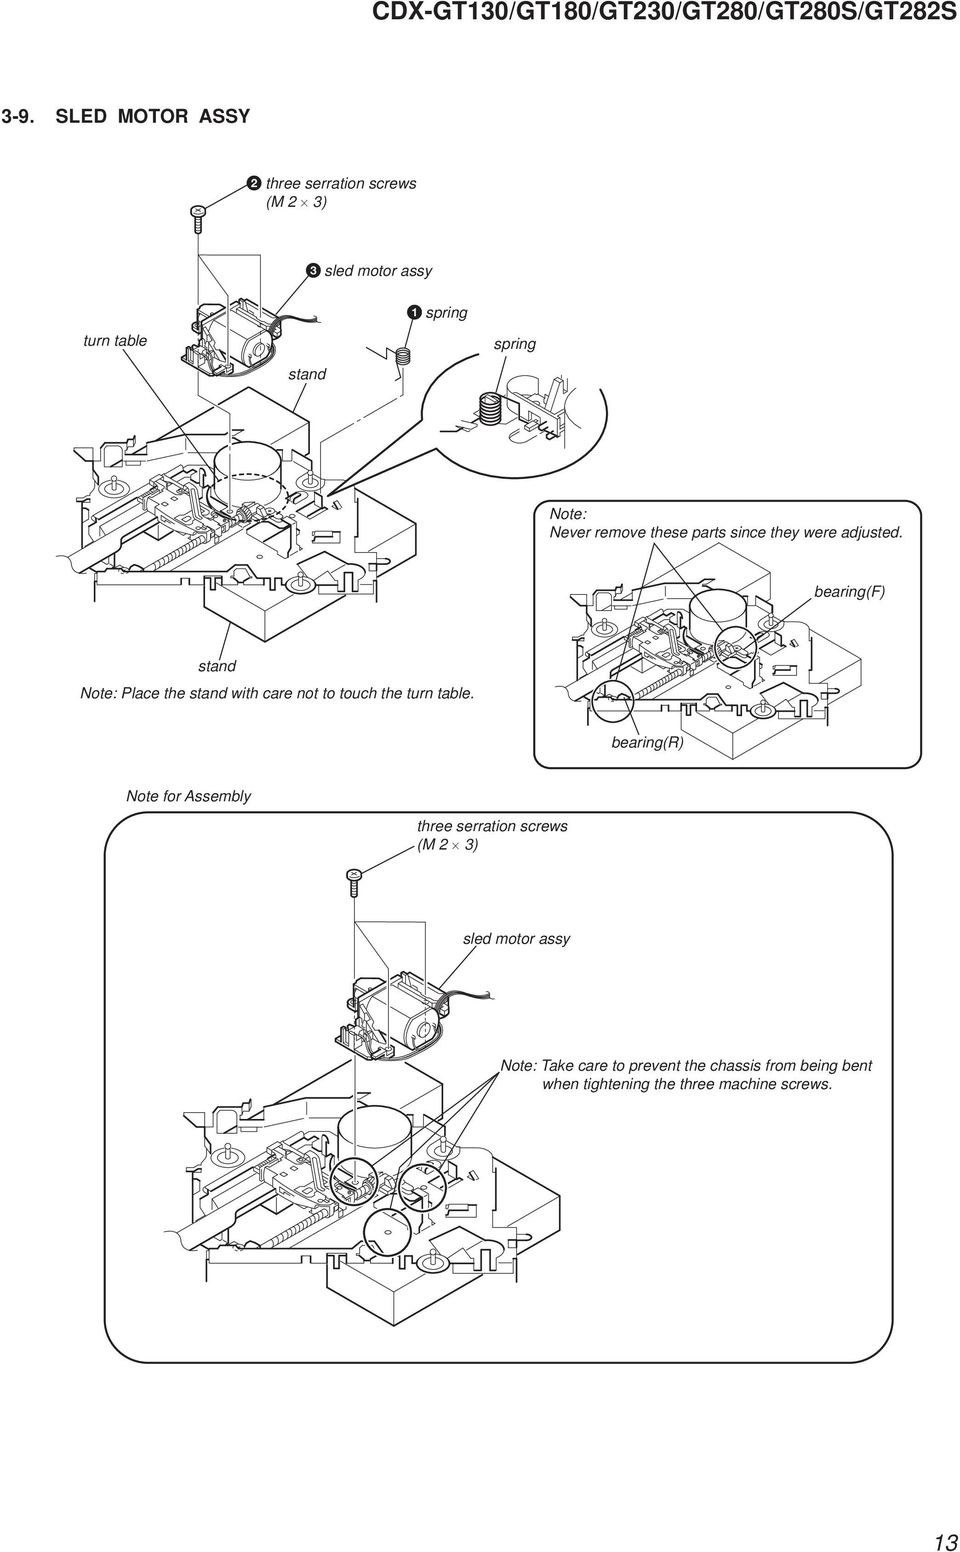 Photo: CDX-GT130) SPECIFICATIONS - PDF